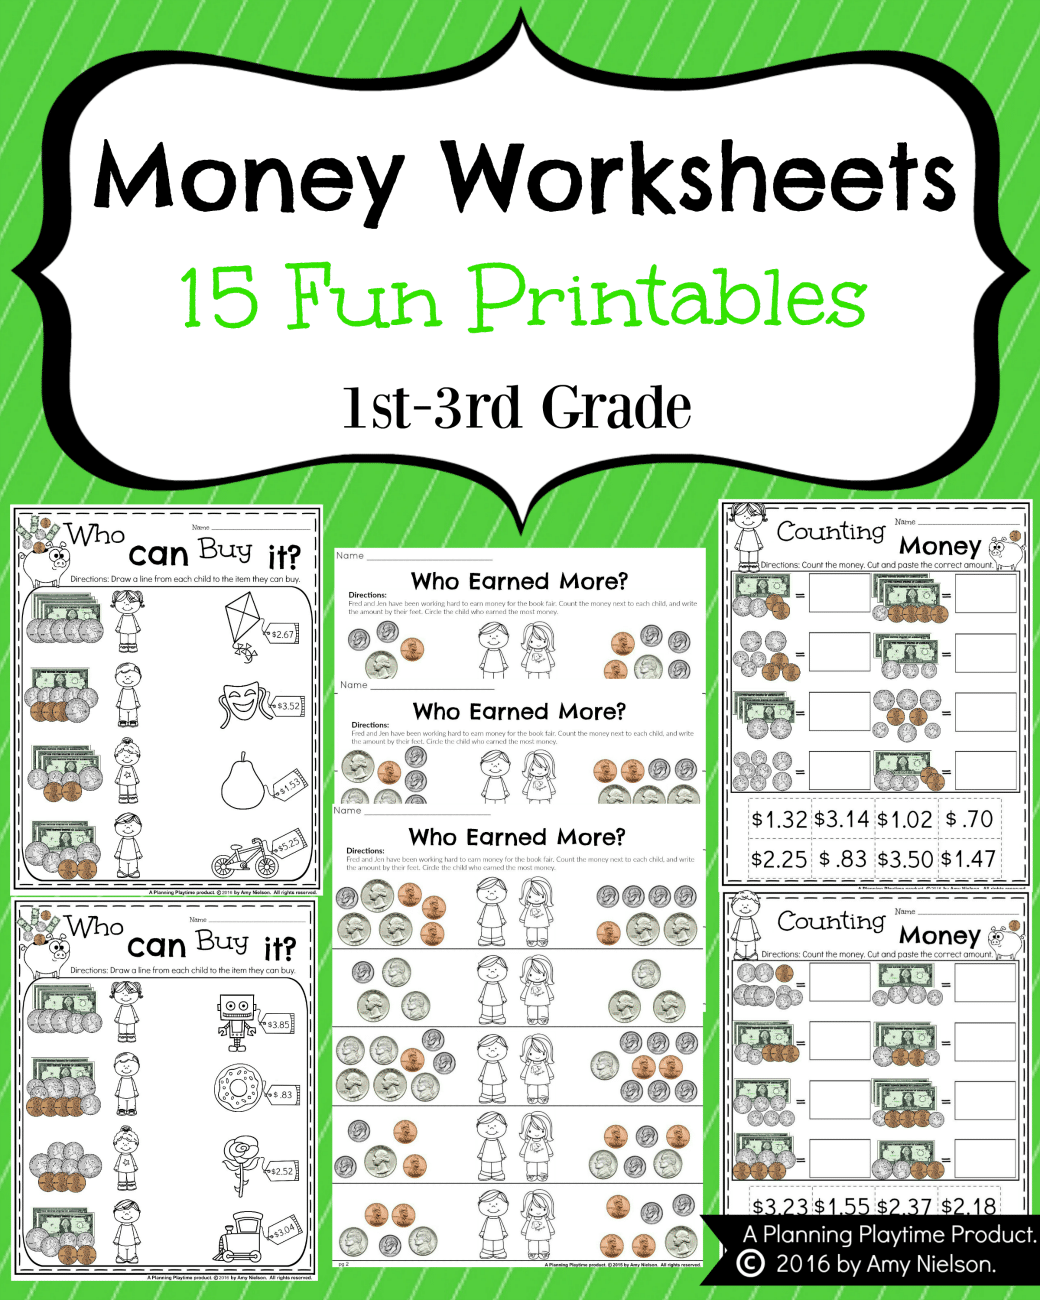 Counting money worksheets second grade